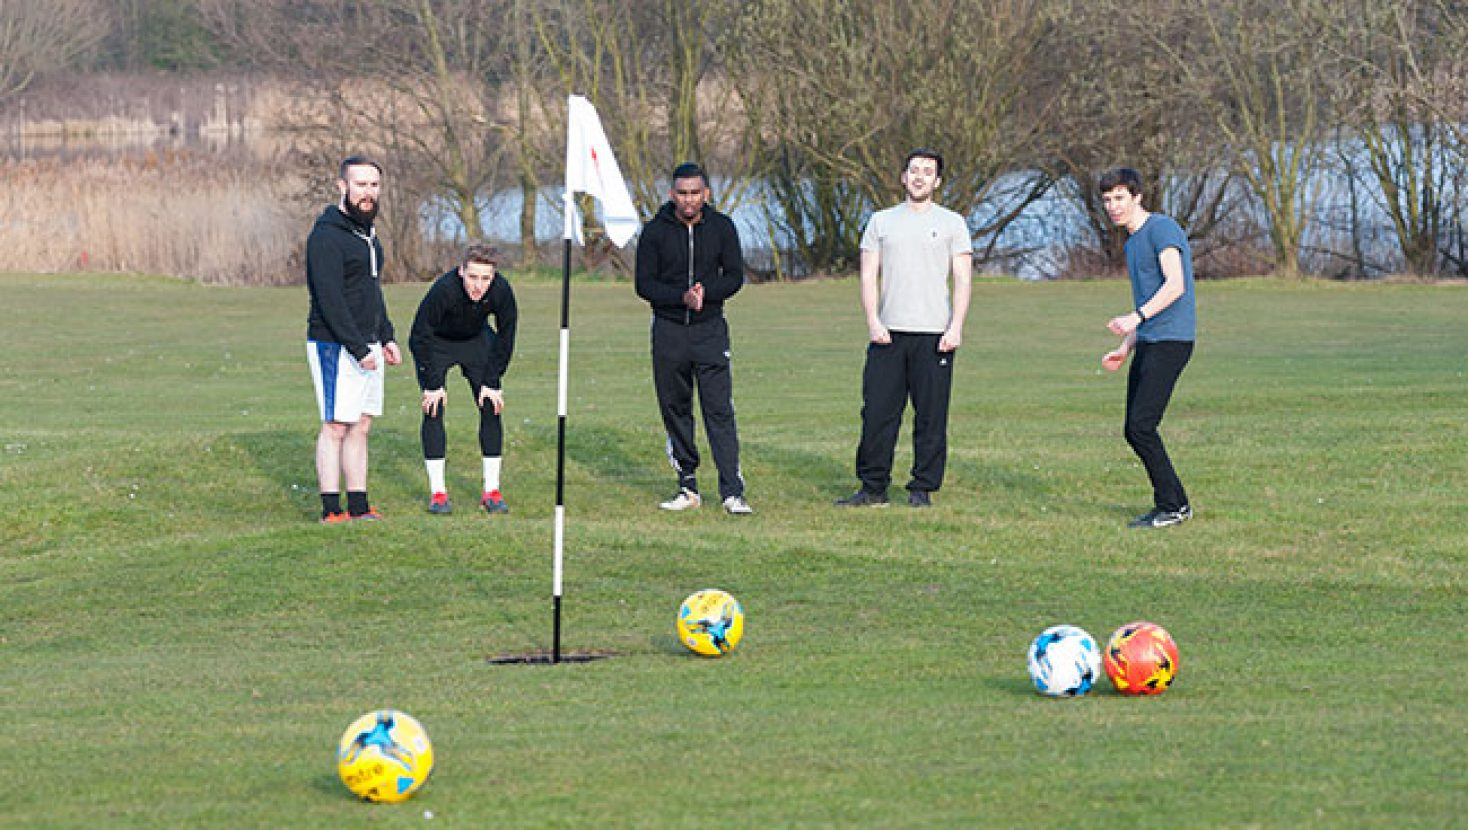 Do's and Don'ts on a Footgolf Stag Do